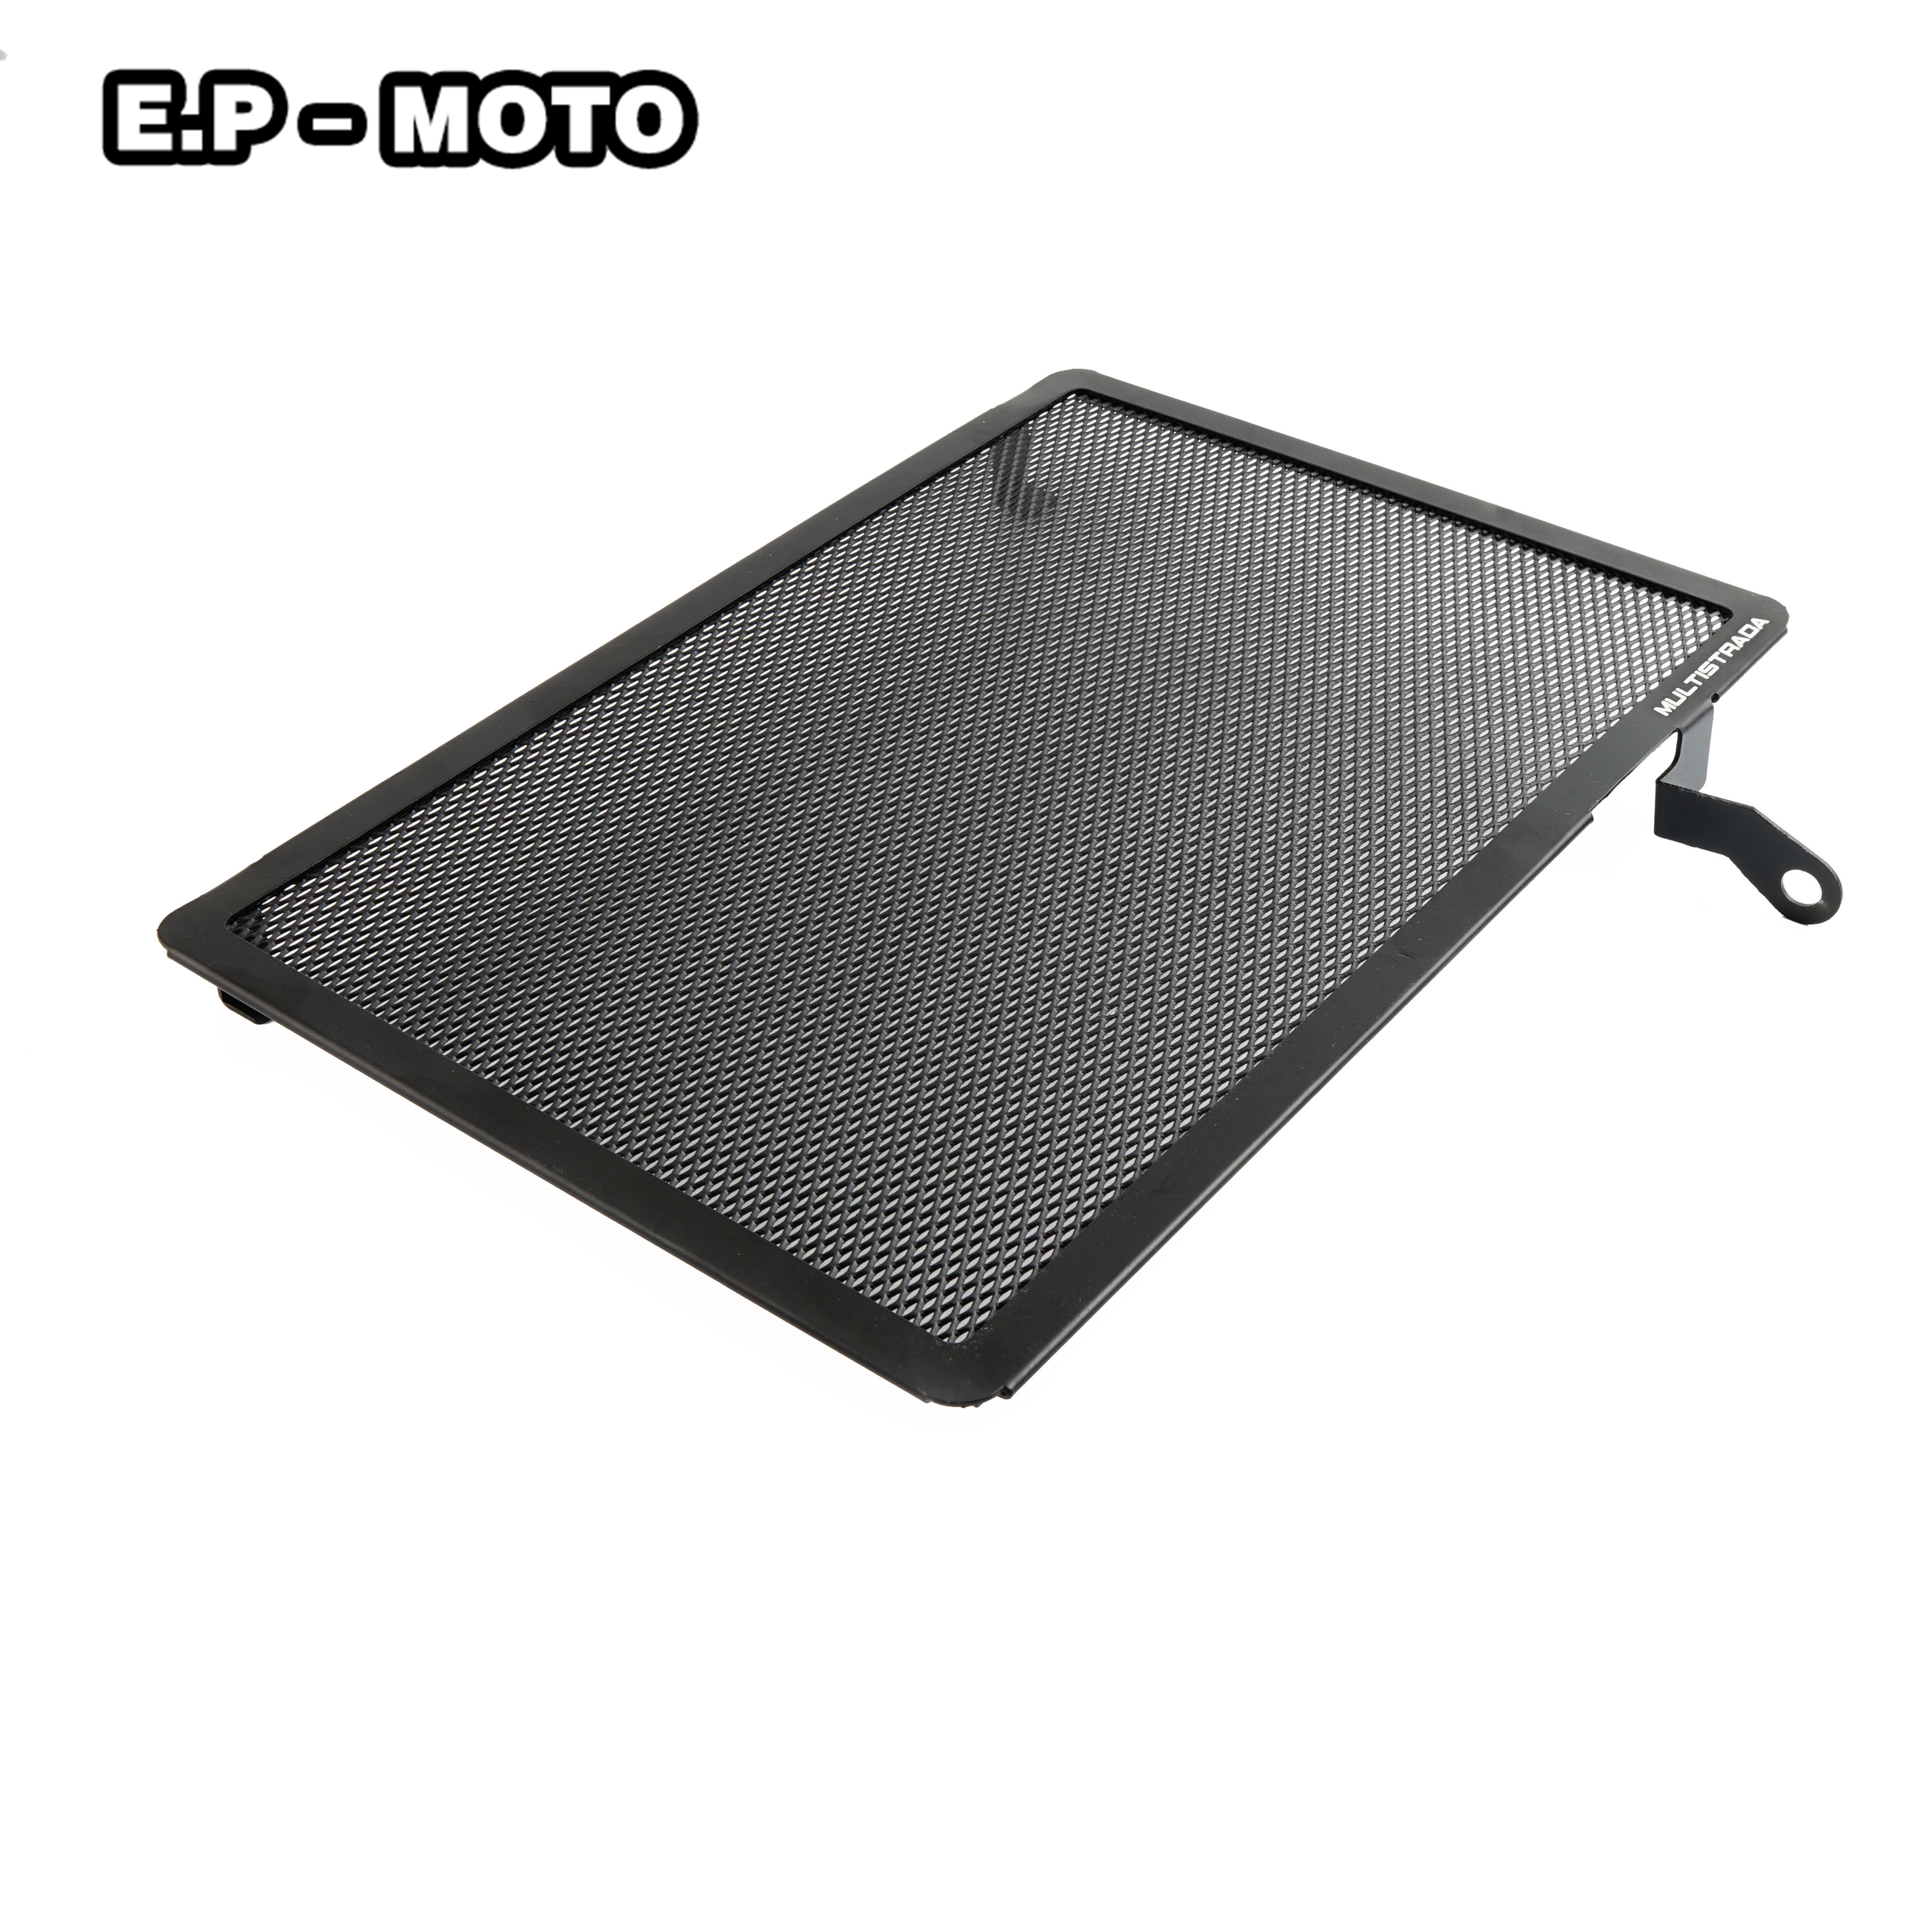 Motorcycle Radiator Grille Guard Protective Cover For Ducati Multistrada 1200 MTS 1200 2010-2016Motorcycle Radiator Grille Guard Protective Cover For Ducati Multistrada 1200 MTS 1200 2010-2016